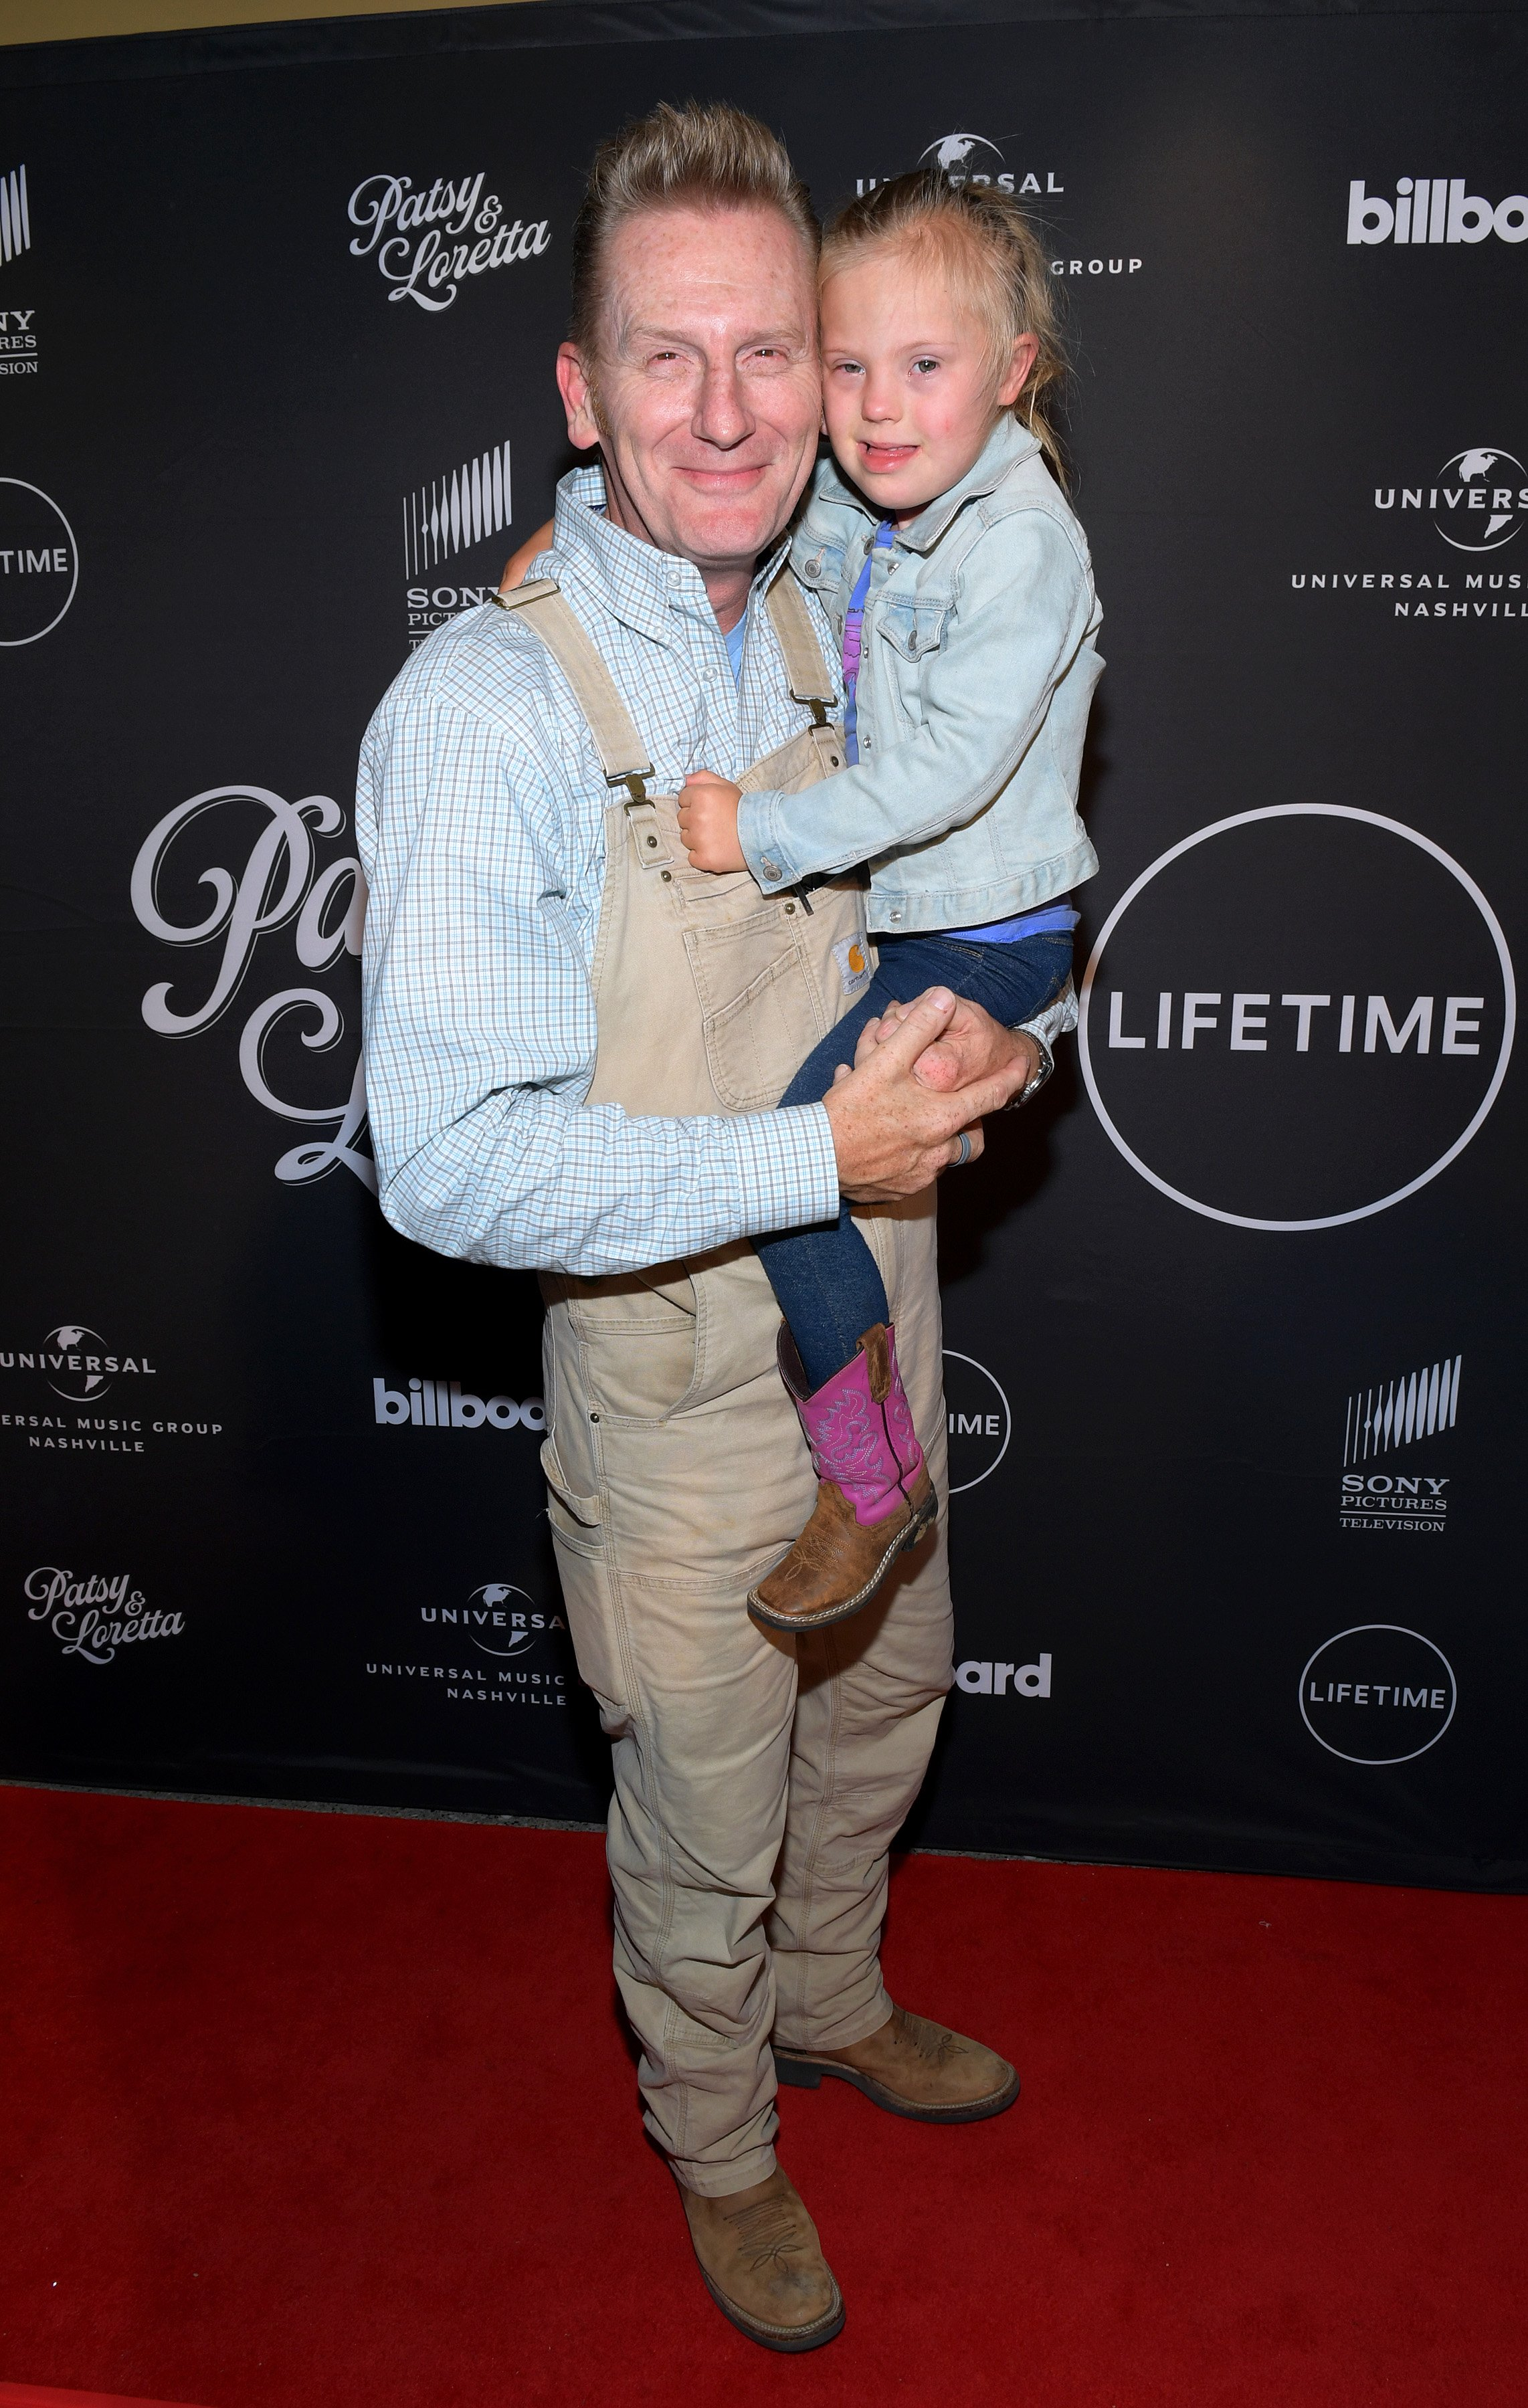 """Rory Feek and daughter Indiana Feek attend a special screening and reception for """"Patsy & Loretta"""" on October 09, 2019 in Franklin, Tennessee. 